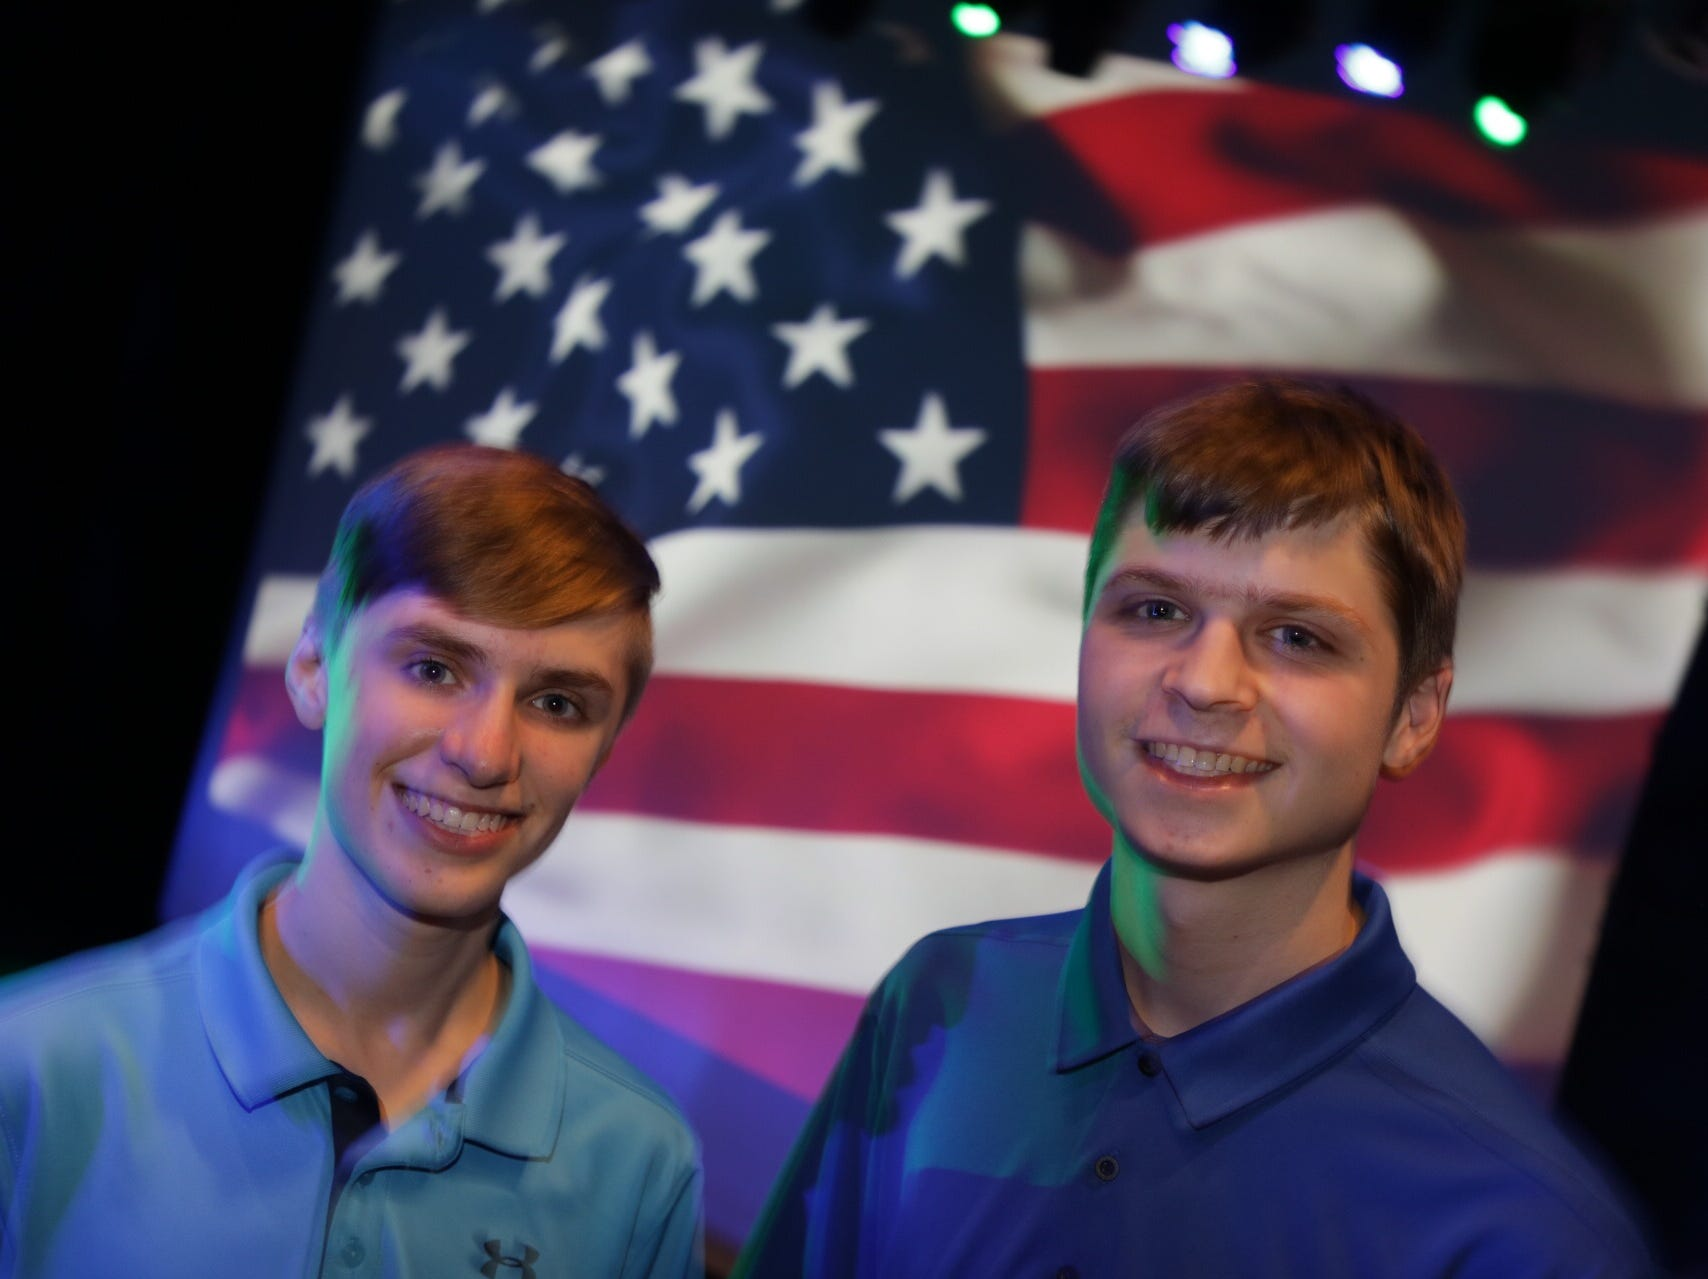 Aidan Johnson-Hill, 16, left and twin brother Brady Johnson- Hill, 16, of Birmingham at the Democratic watch party at MotorCity Casino's Sound Board in Detroit on Tuesday, Nov. 6, 2018.